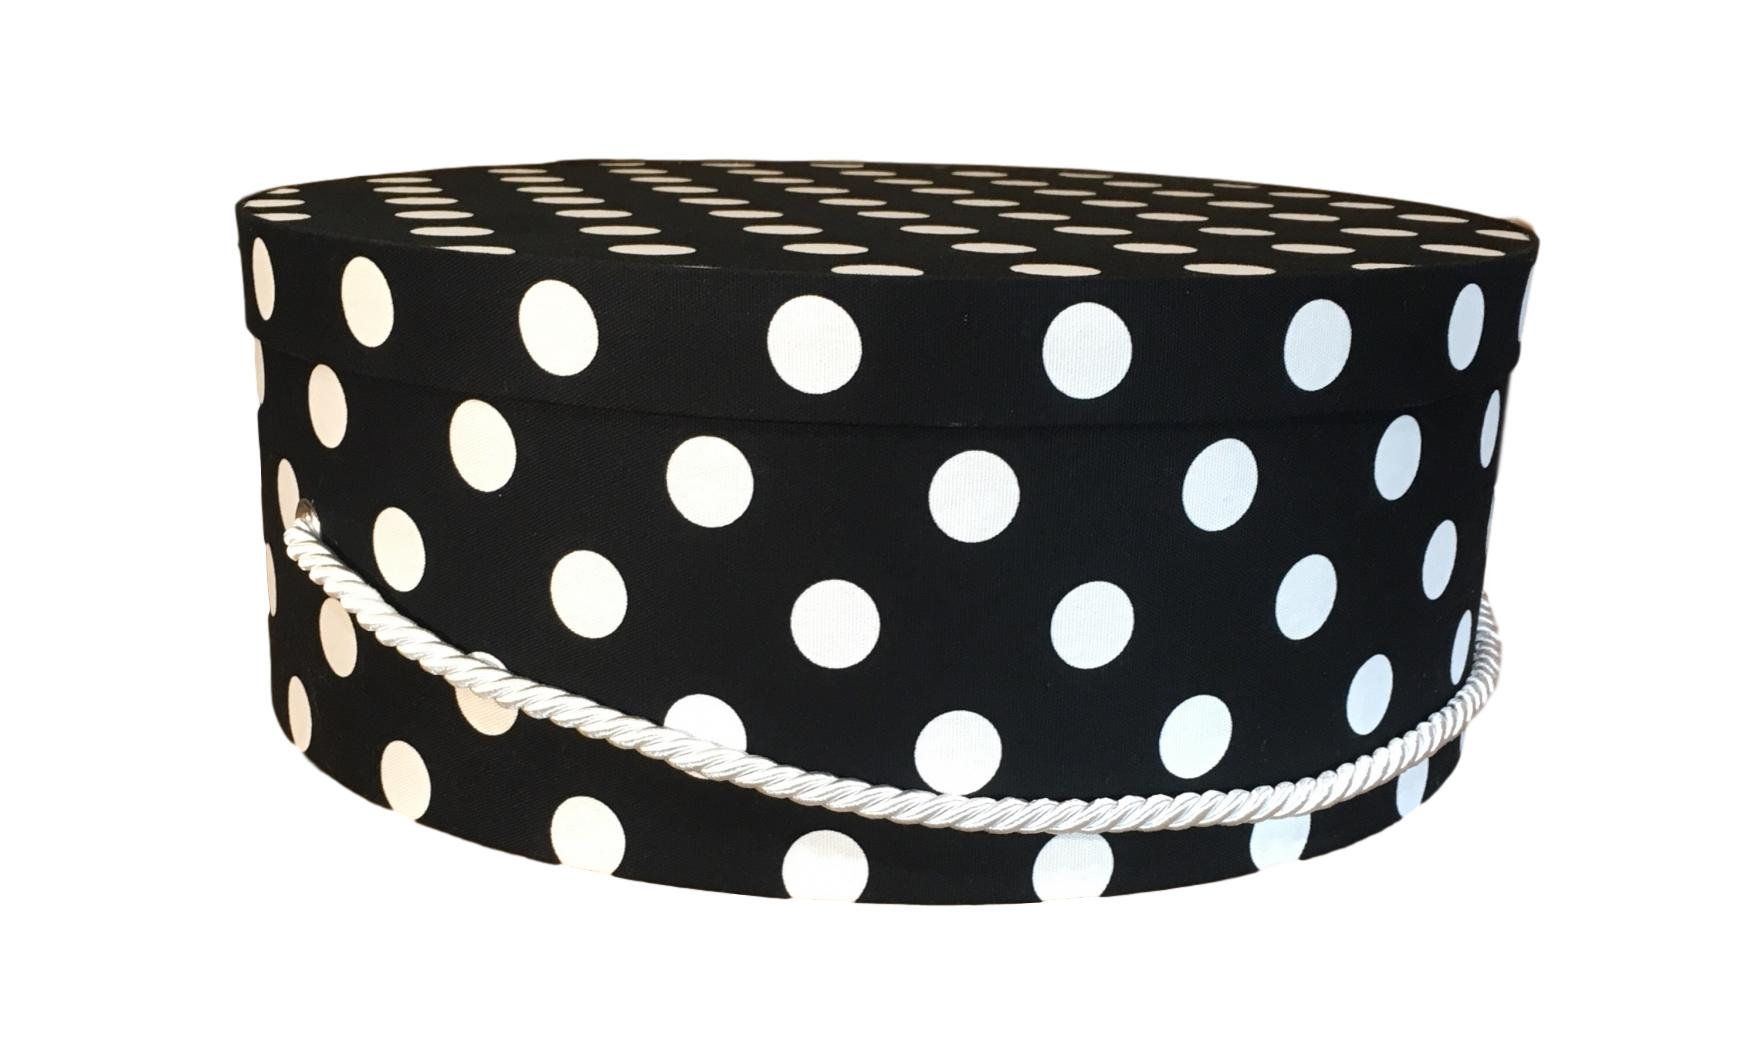 Large Hat Box In Black And White Polka Dot Decorative Fabric Covered Hat Boxes Round Storage Box Keepsake Boxes With Lid N Hat Box Fabric Decor Luxury Hats